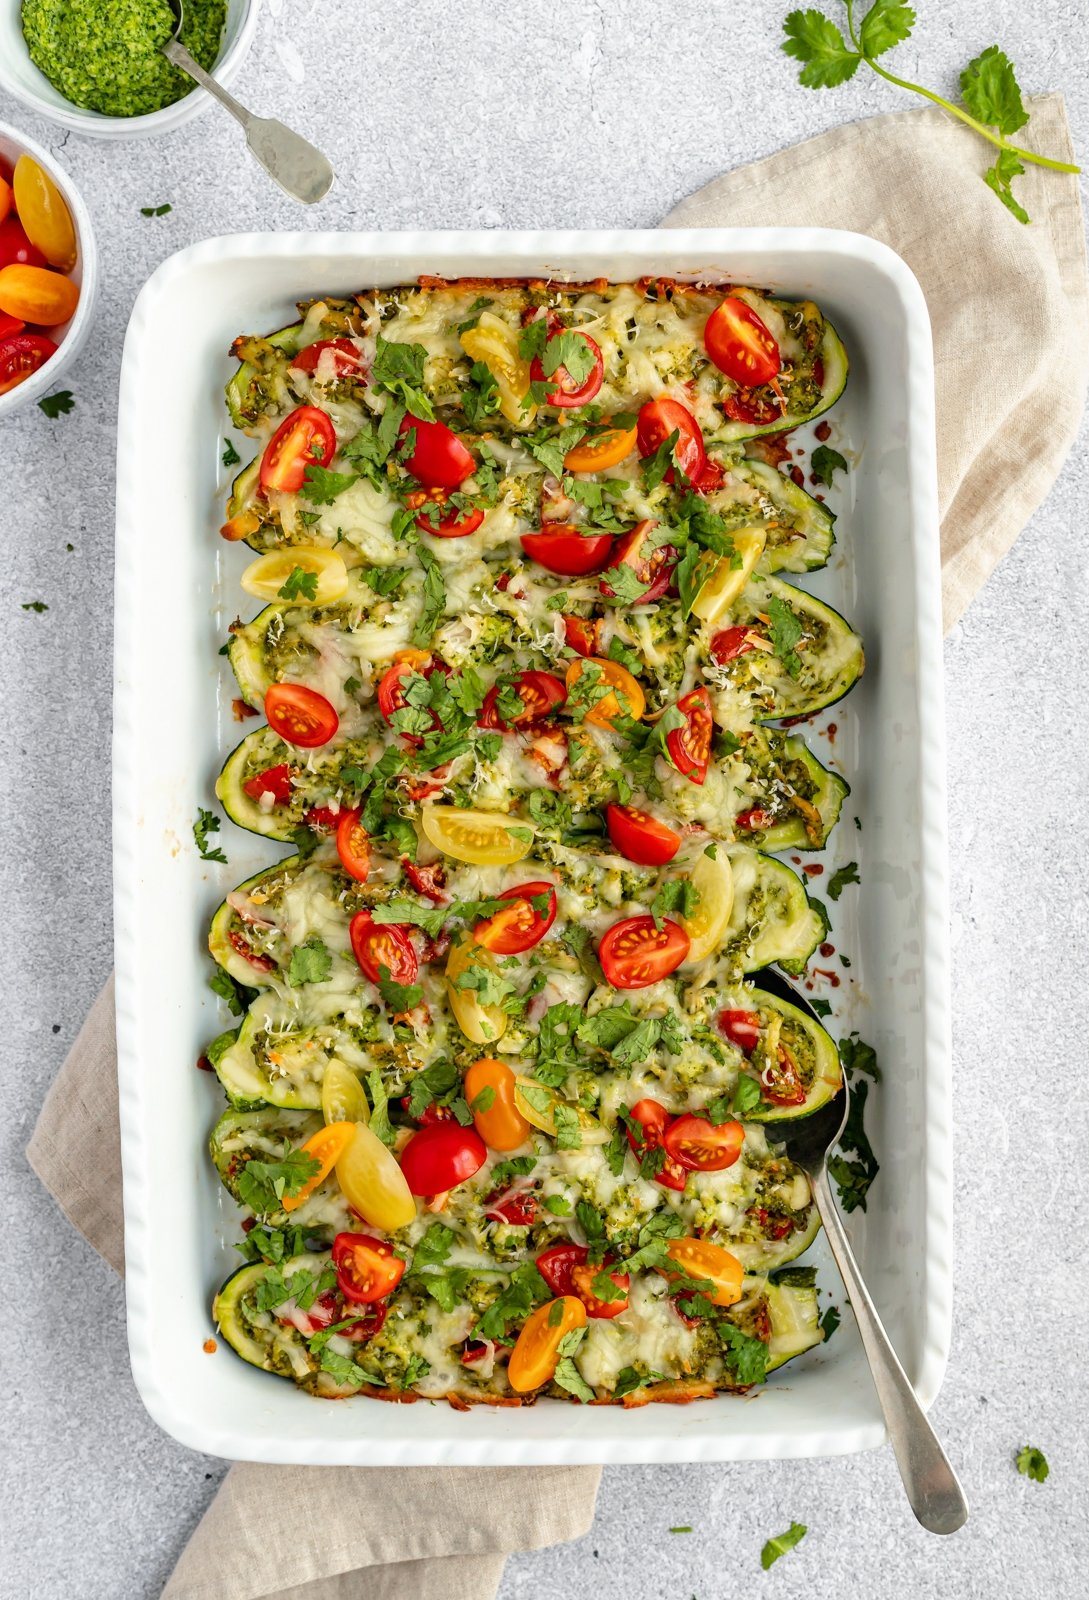 low carb pesto chicken stuffed zucchini boats in a baking dish